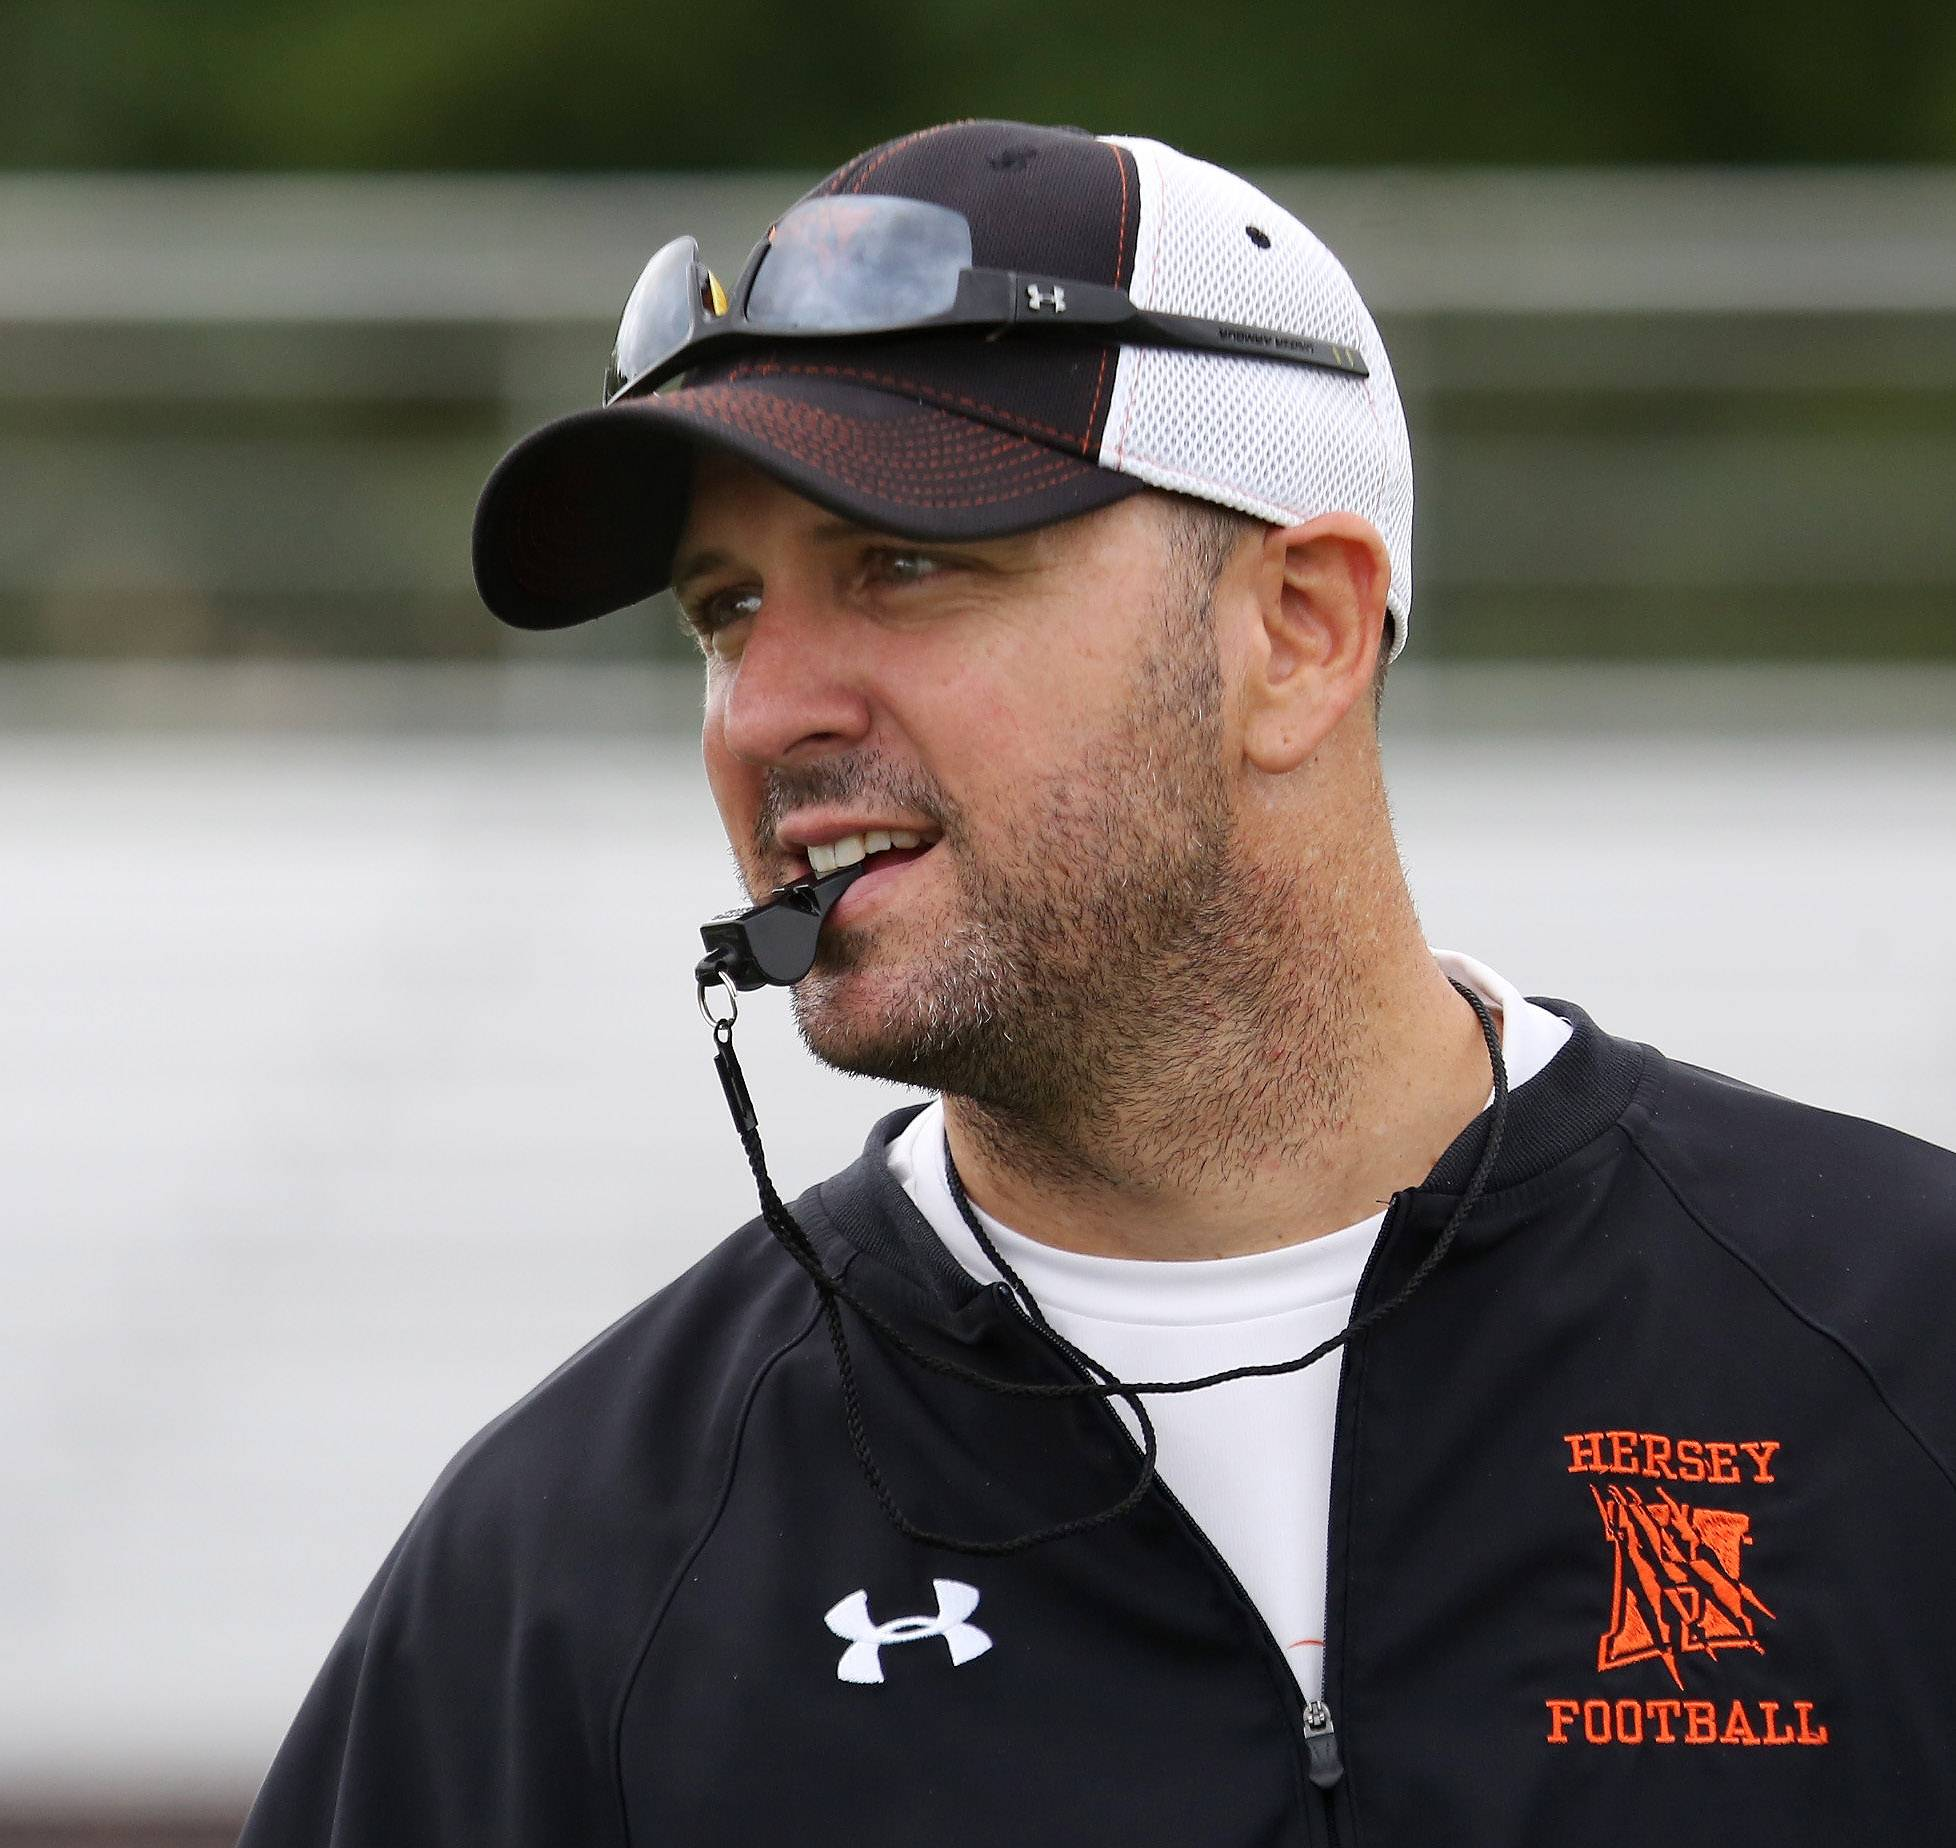 Football coach Joe Pardun watches his team during drills on the first day of football practice at Hersey High School on Monday. Pardun is starting his first year leading the team after several years as an assistant.